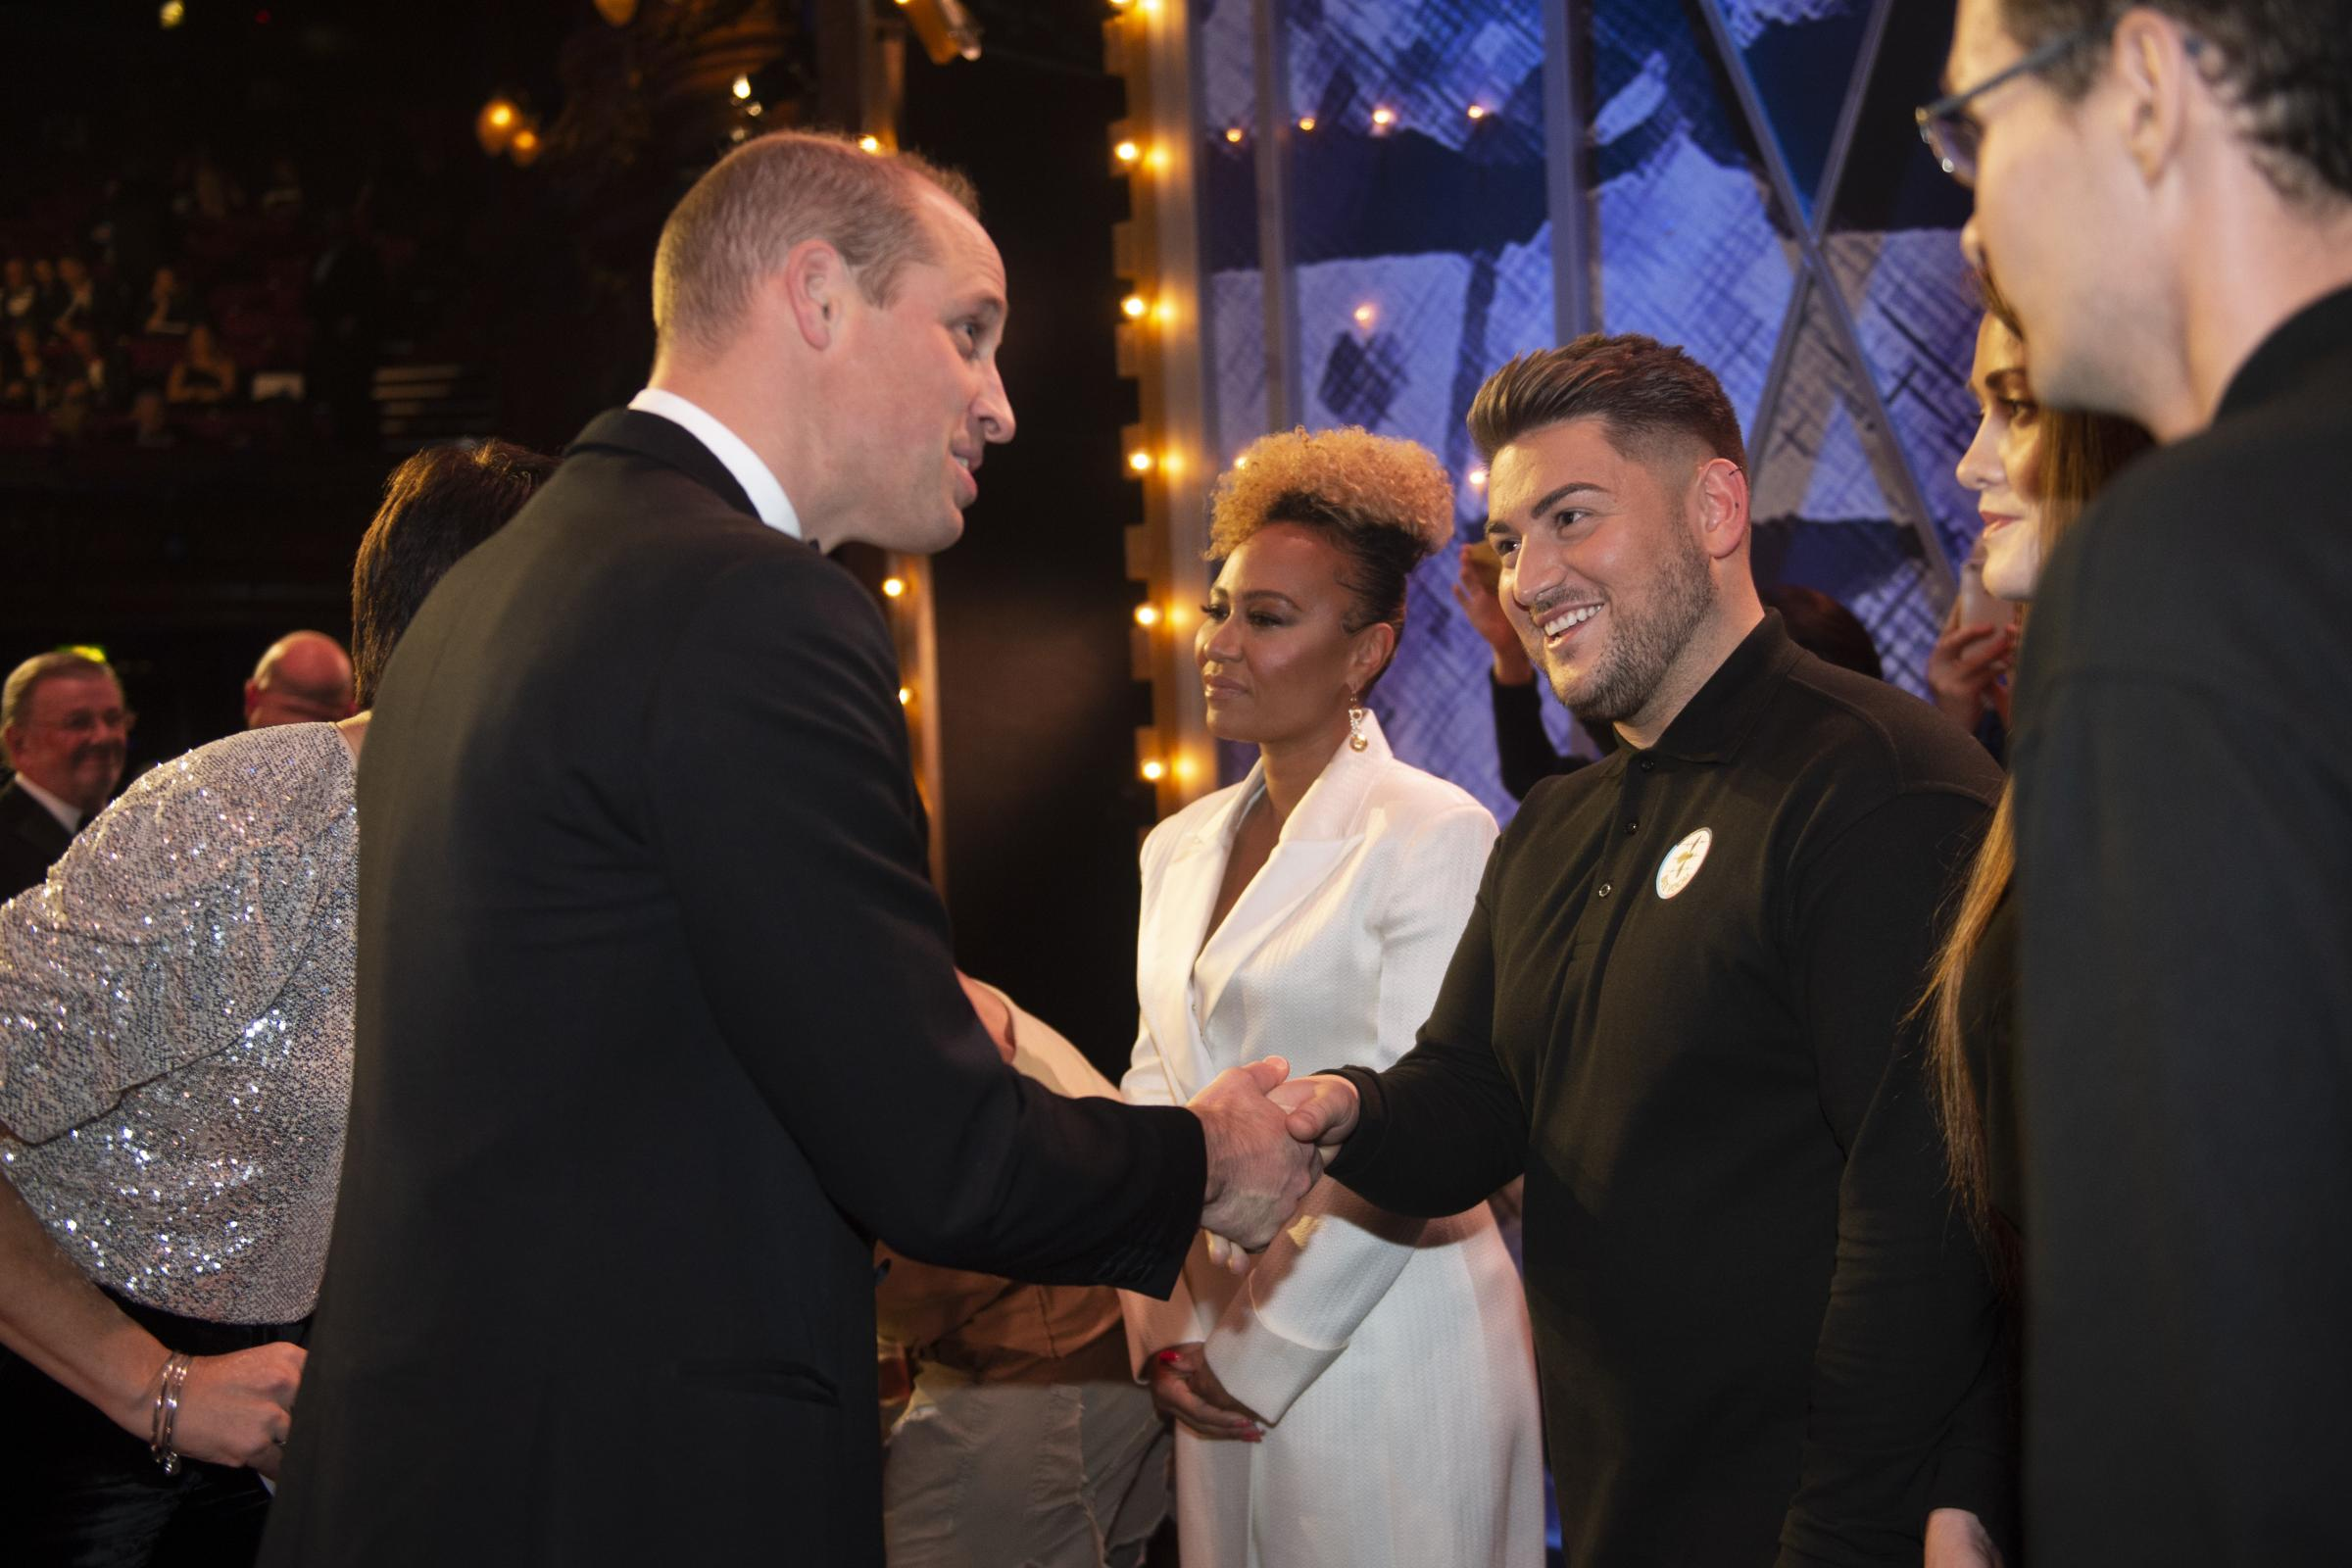 William awards 'royal seal of approval' to variety performance hosts - Dudley News